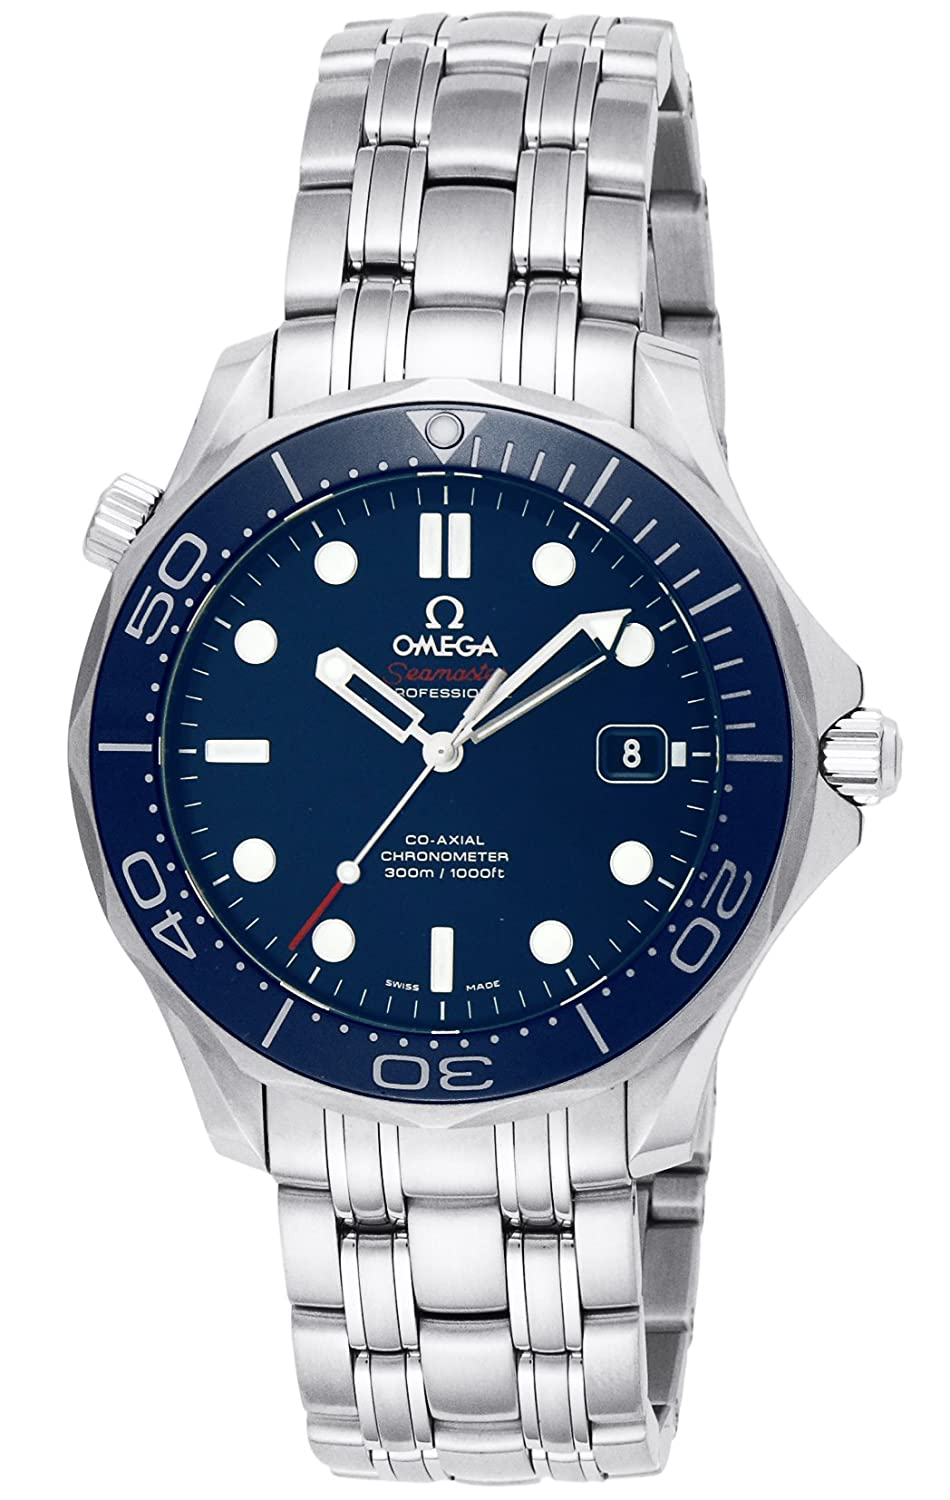 Omega Seamaster Diver 300m Co-axial 41 mm 212.30.41.20.03.001